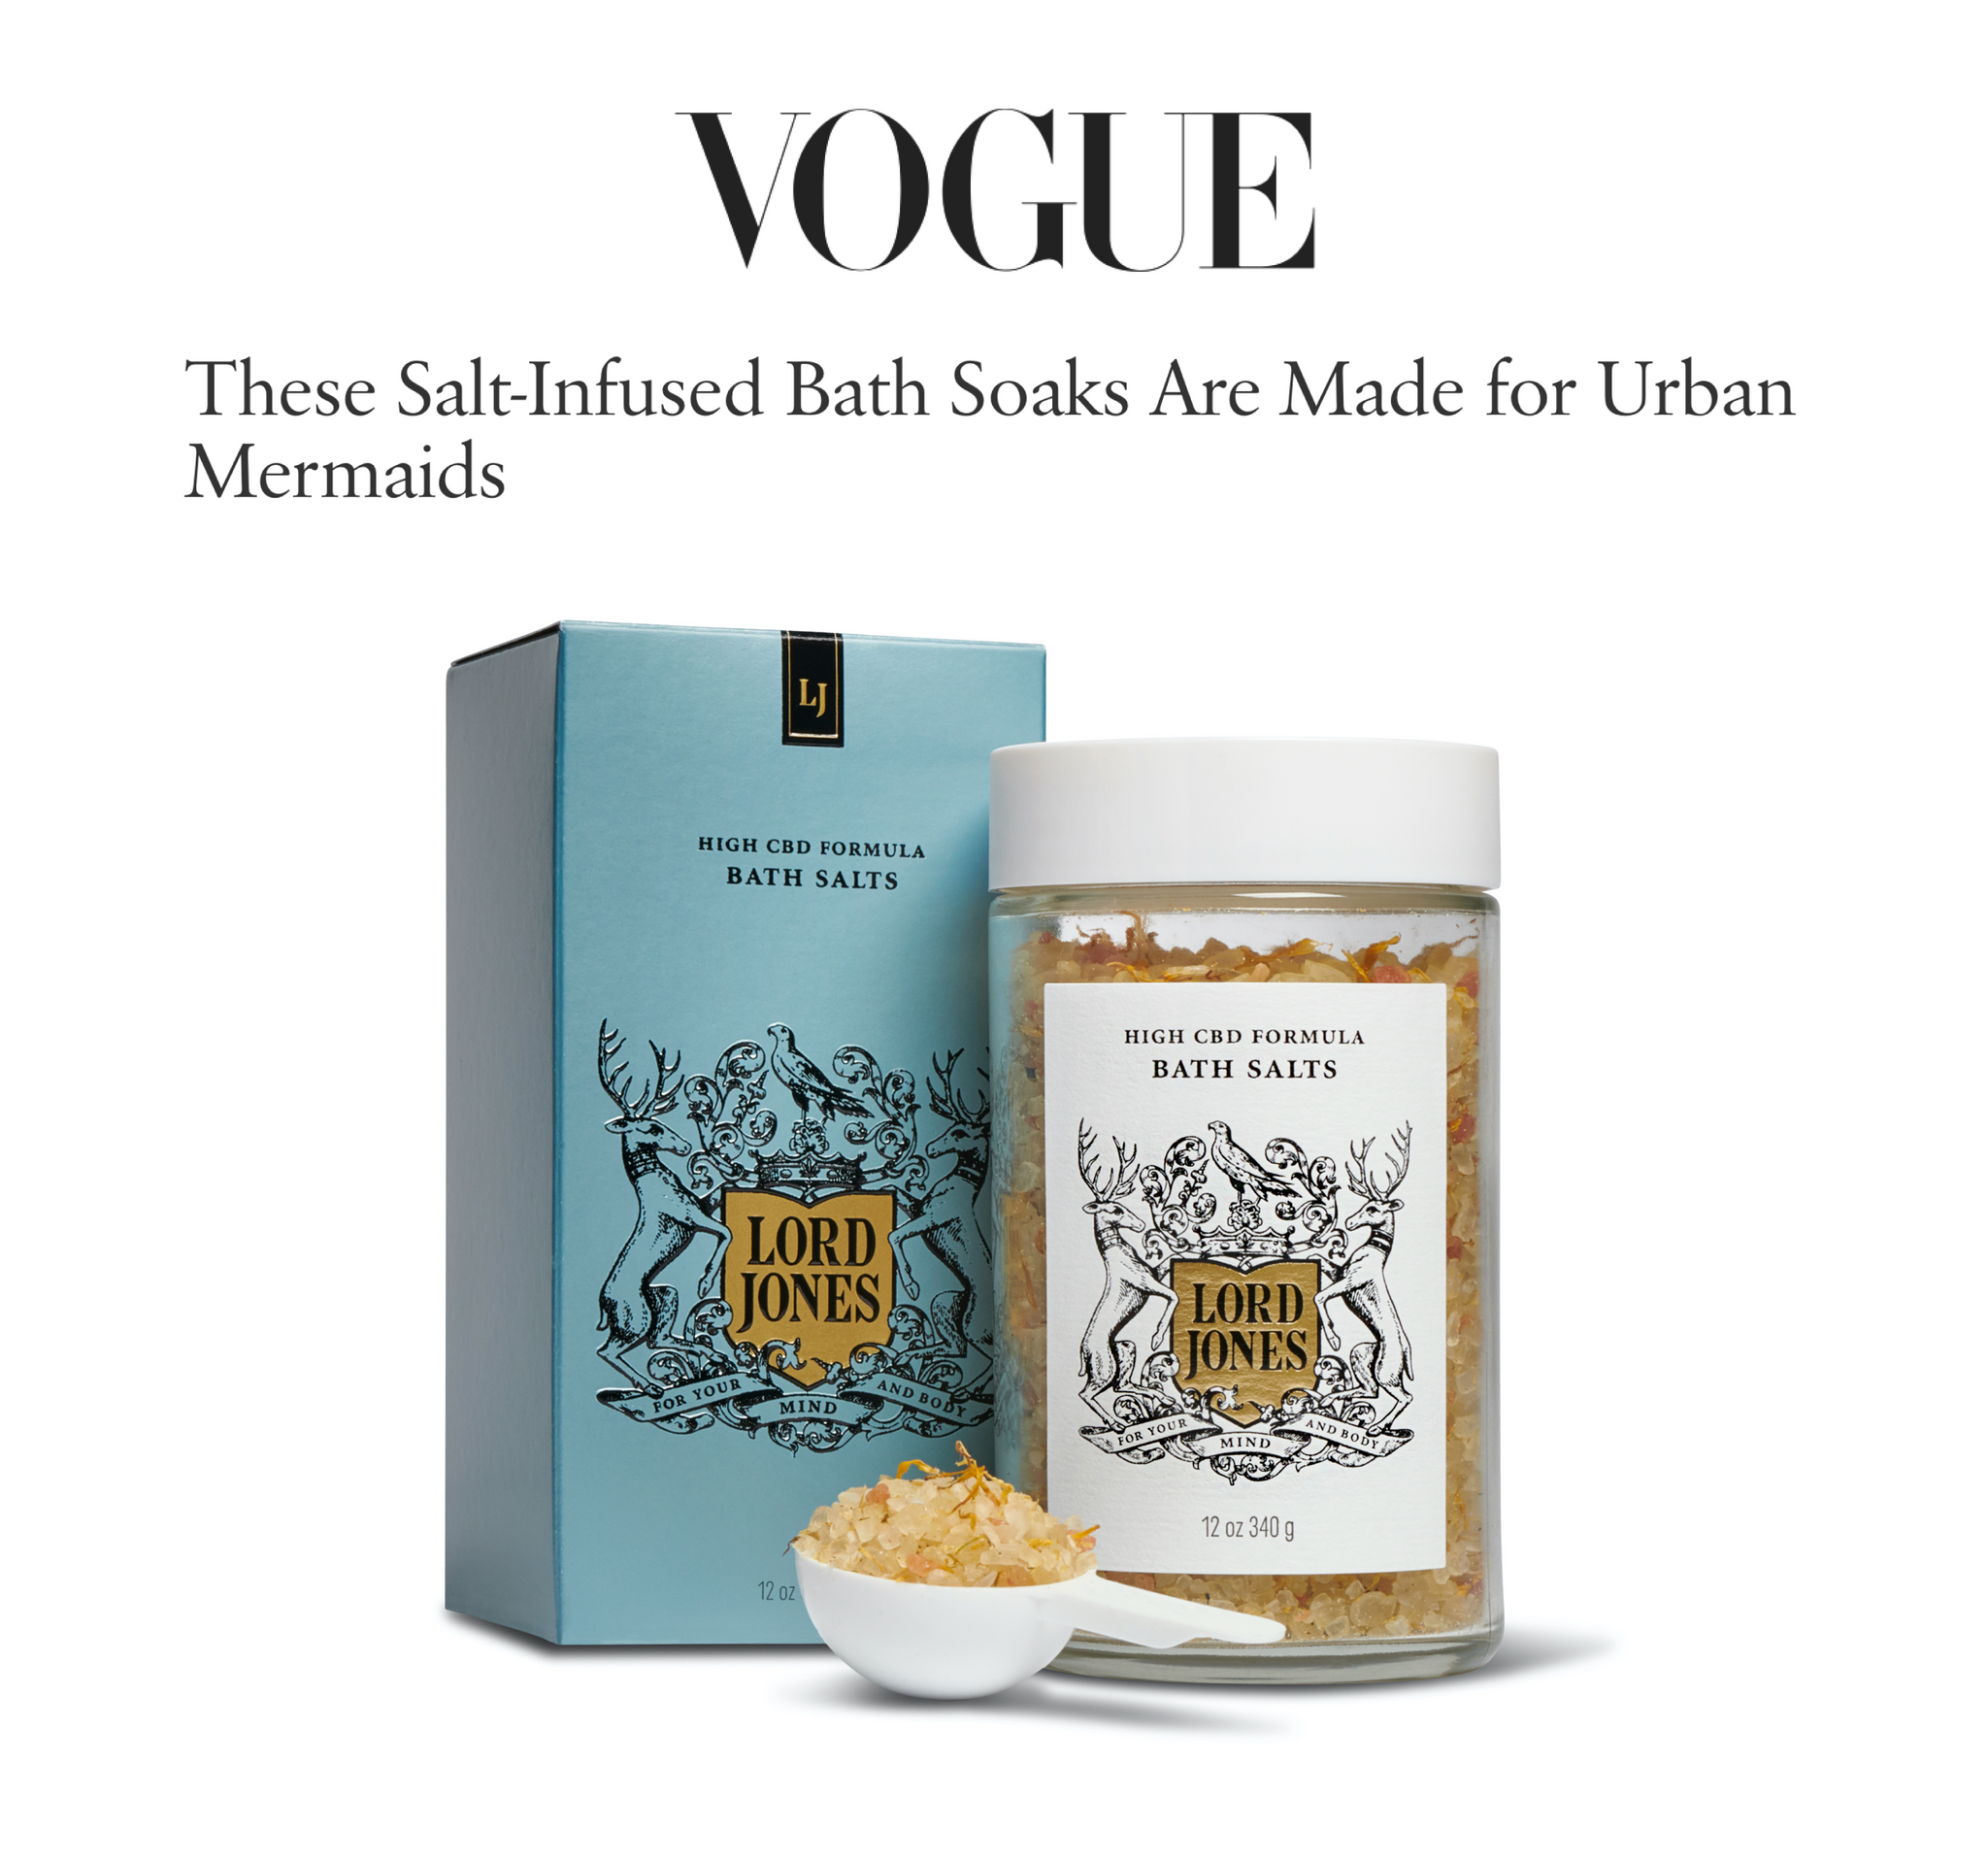 These Salt-Infused Bath Soaks Are Made for Urban Mermaids